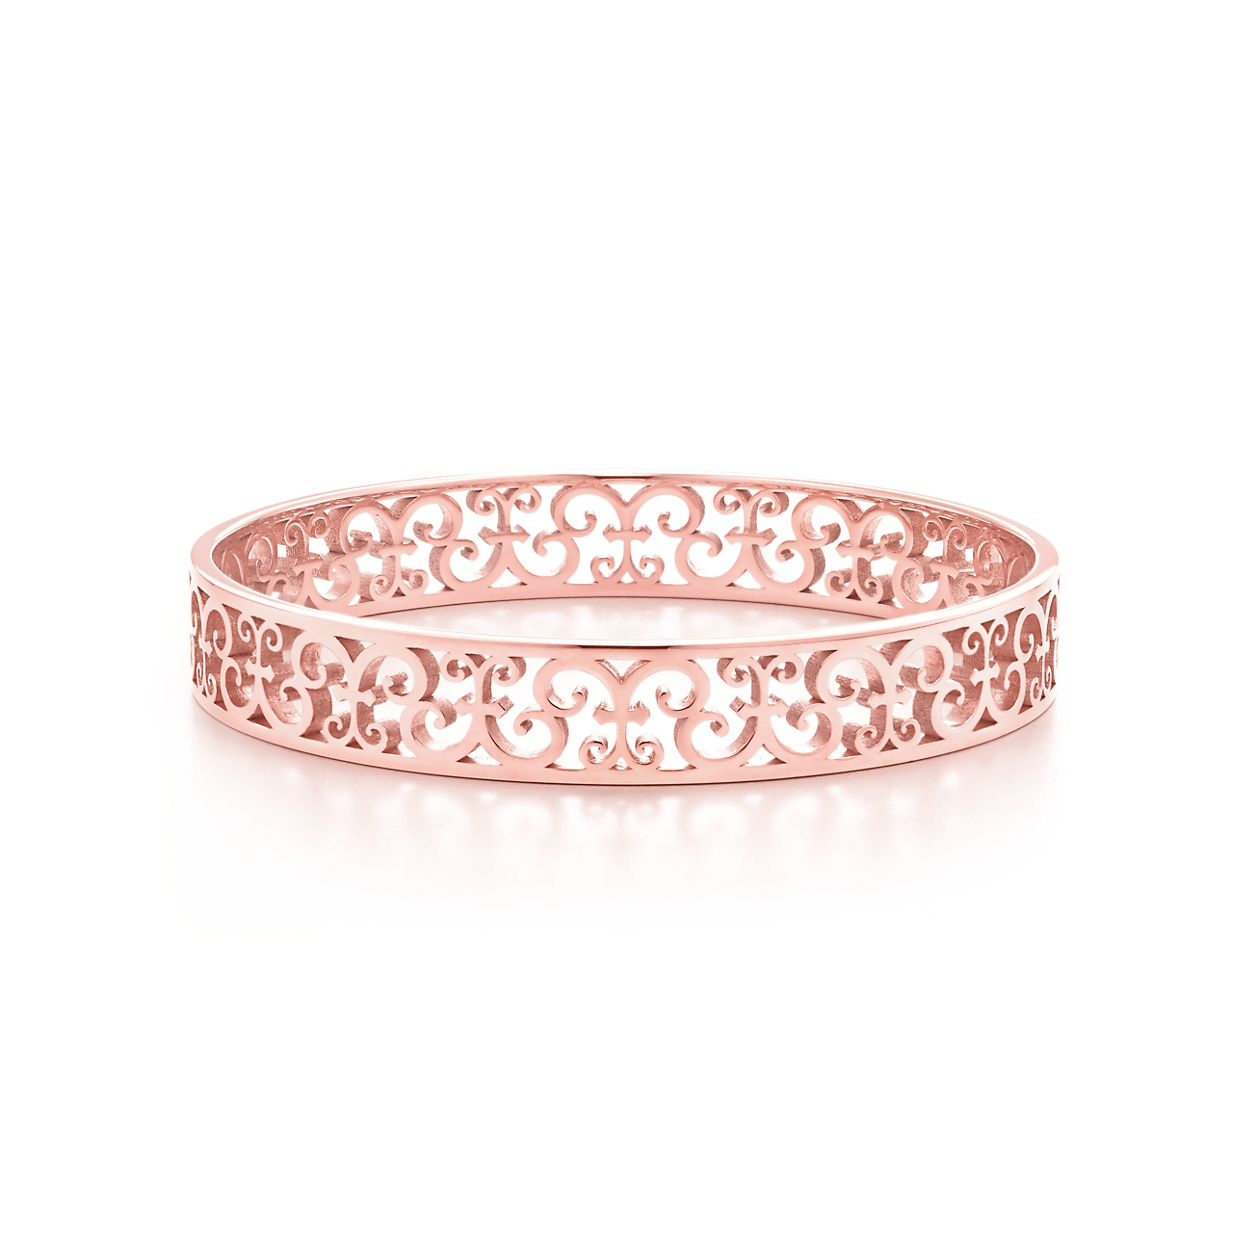 Tiffany Enchant® narrow bangle in Rubedo® metal, medium. | Tiffany & Co.